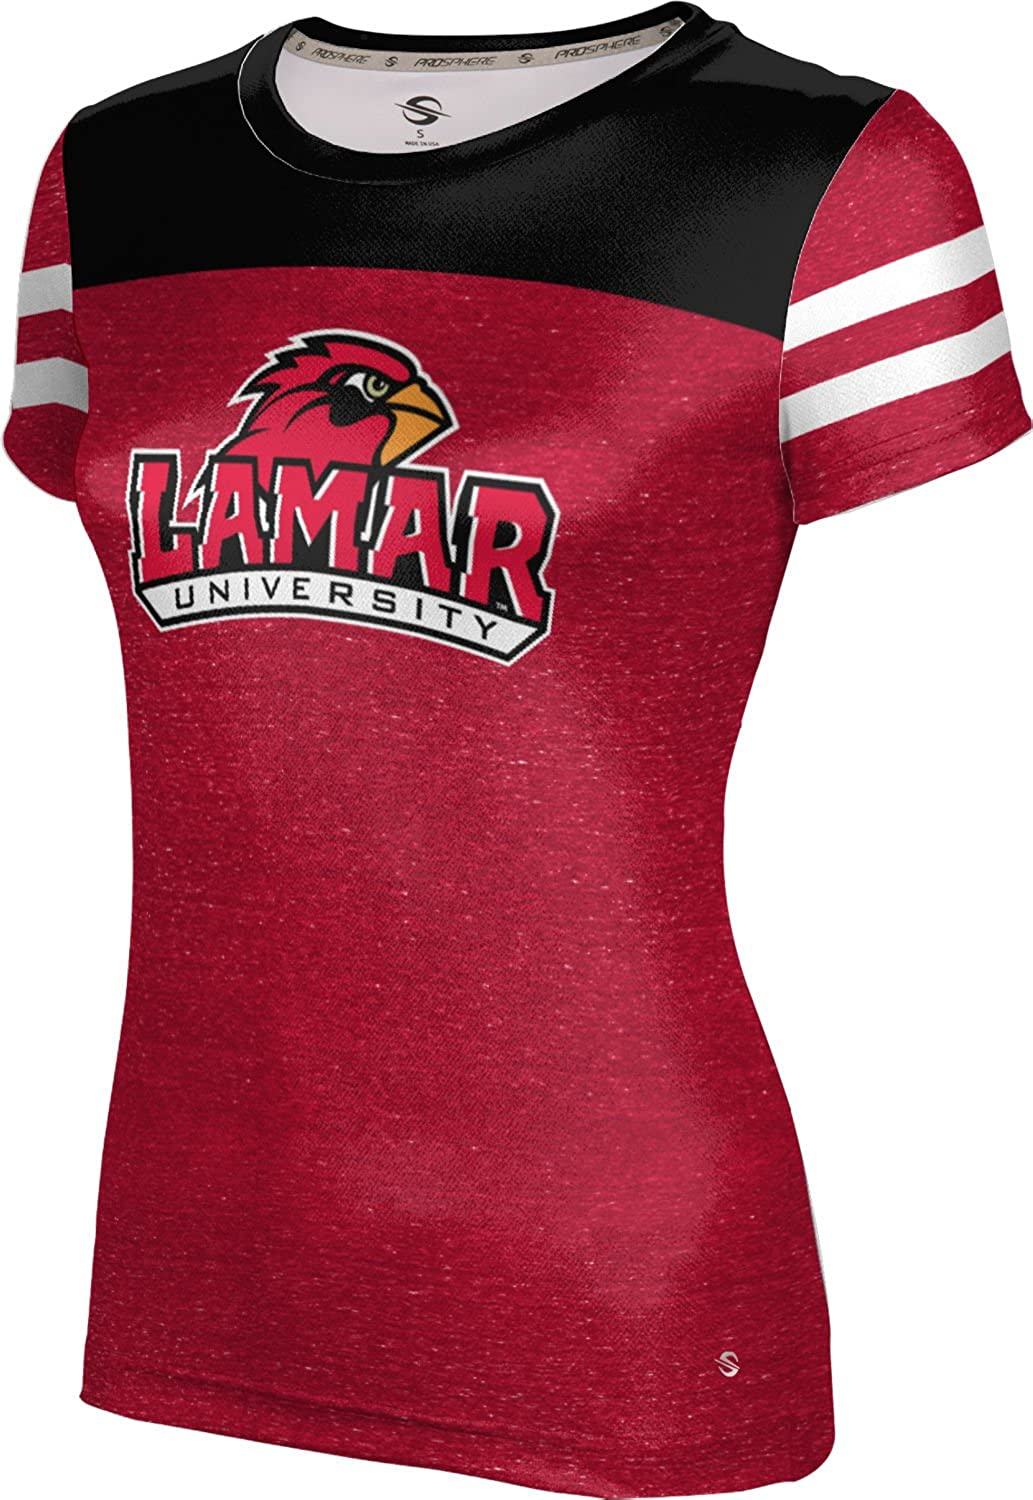 ProSphere Special Campaign Lamar University Women's T-Shirt Challenge the lowest price Gameday Performance